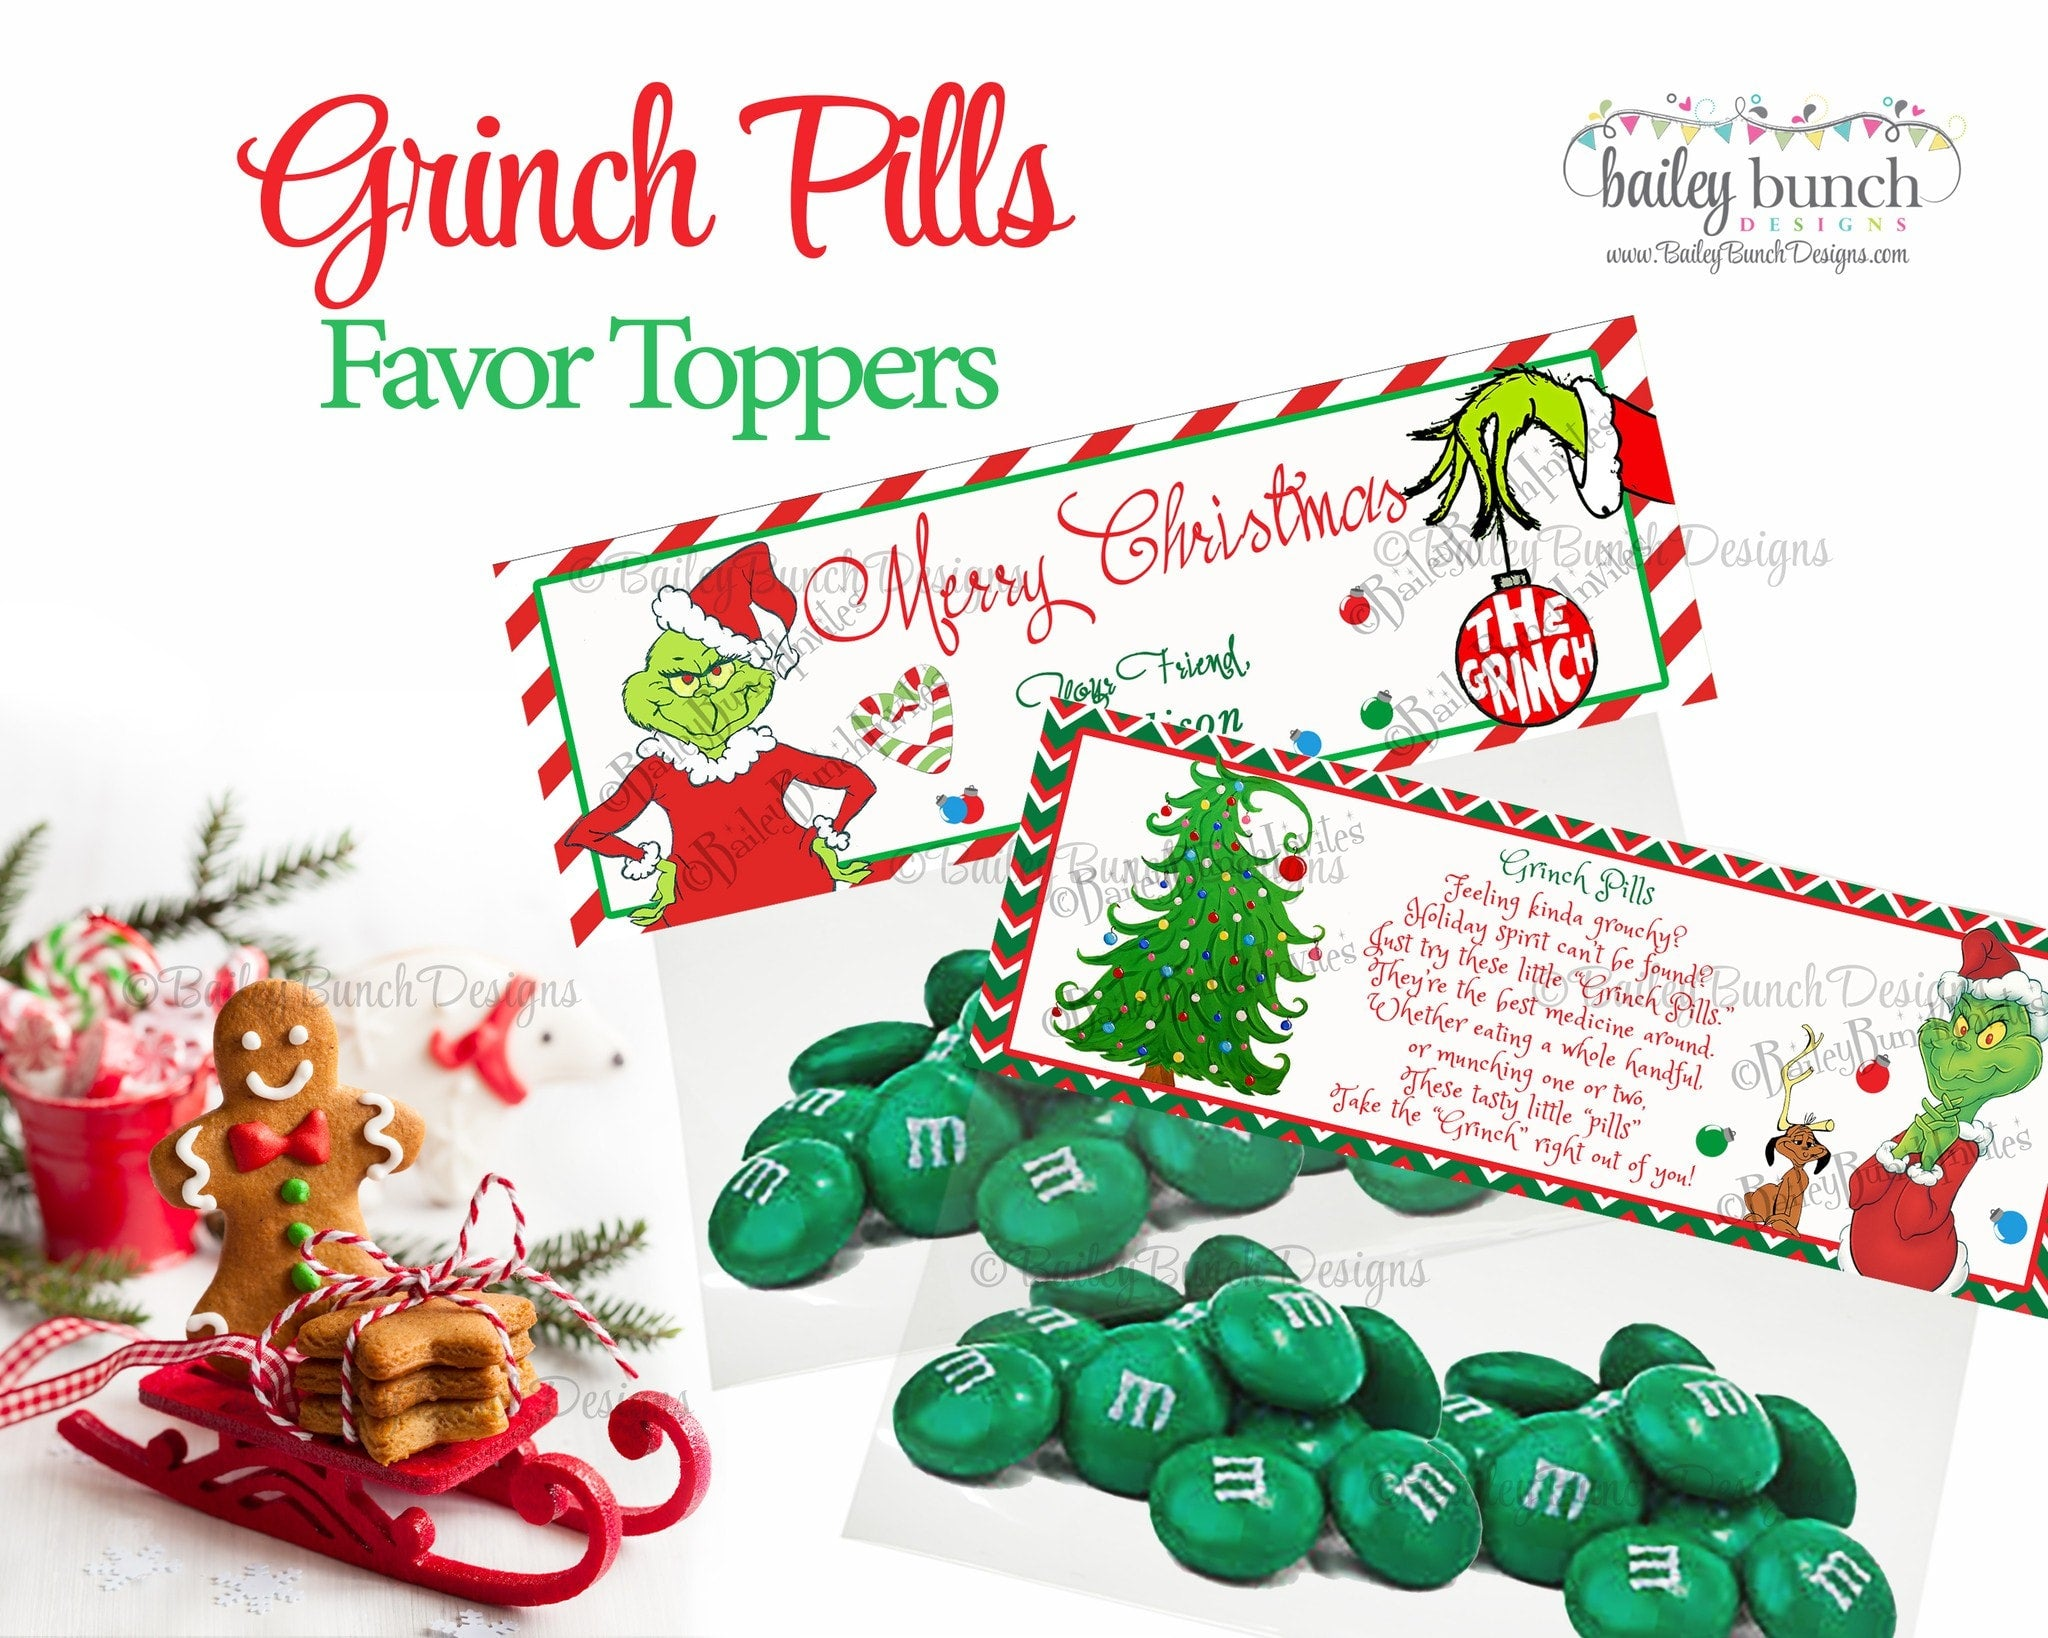 image regarding Grinch Pills Free Printable known as Grinch Supplements Handle Baggage, Xmas Toppers GRINCH0520